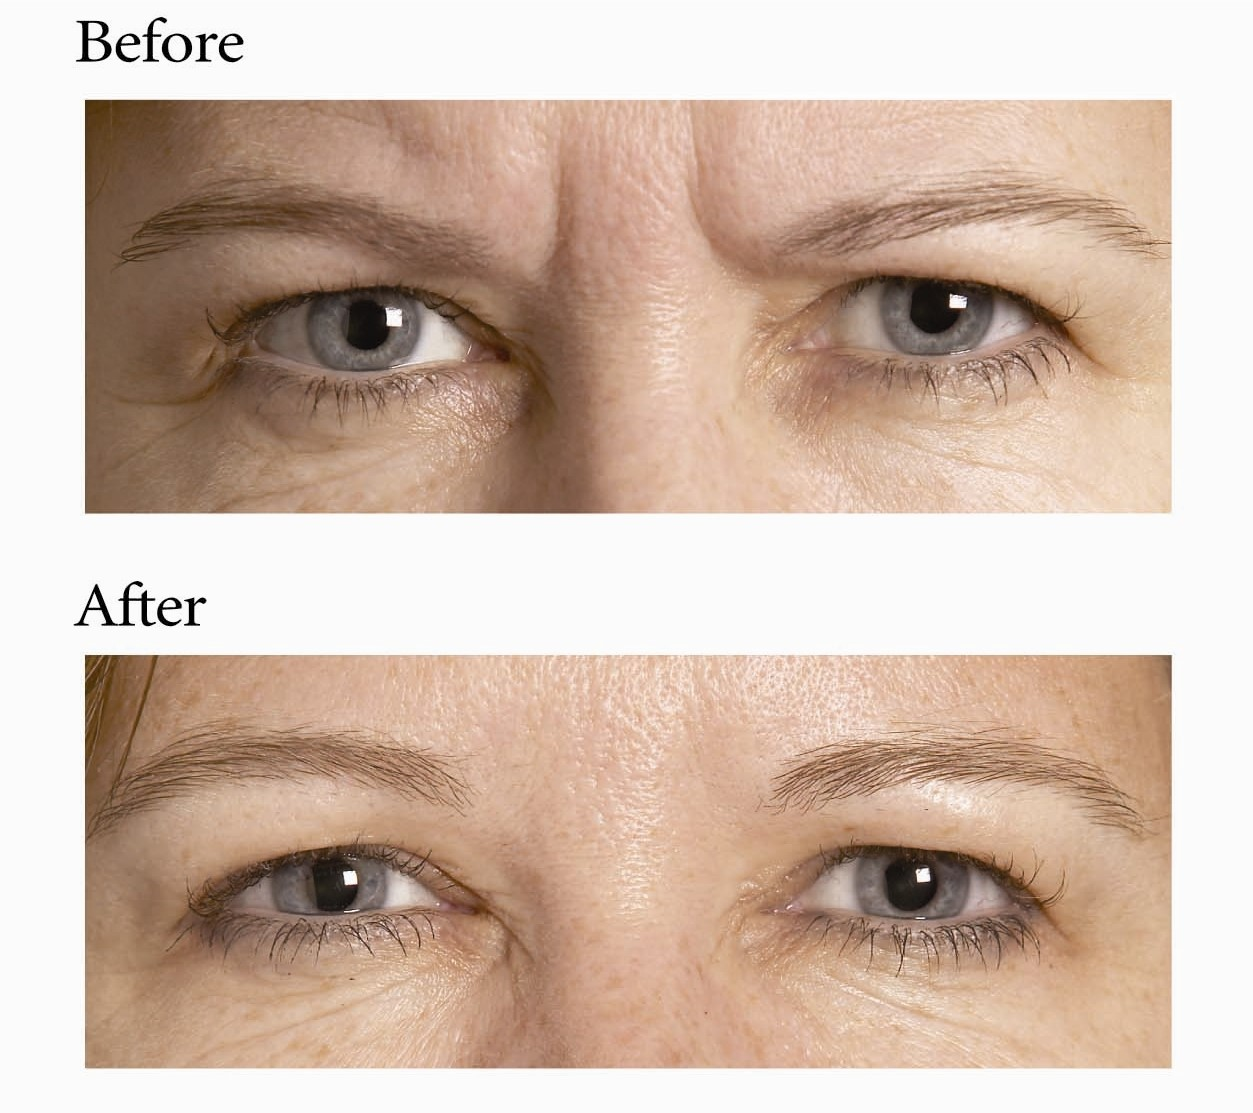 Botox Treatment Before & After